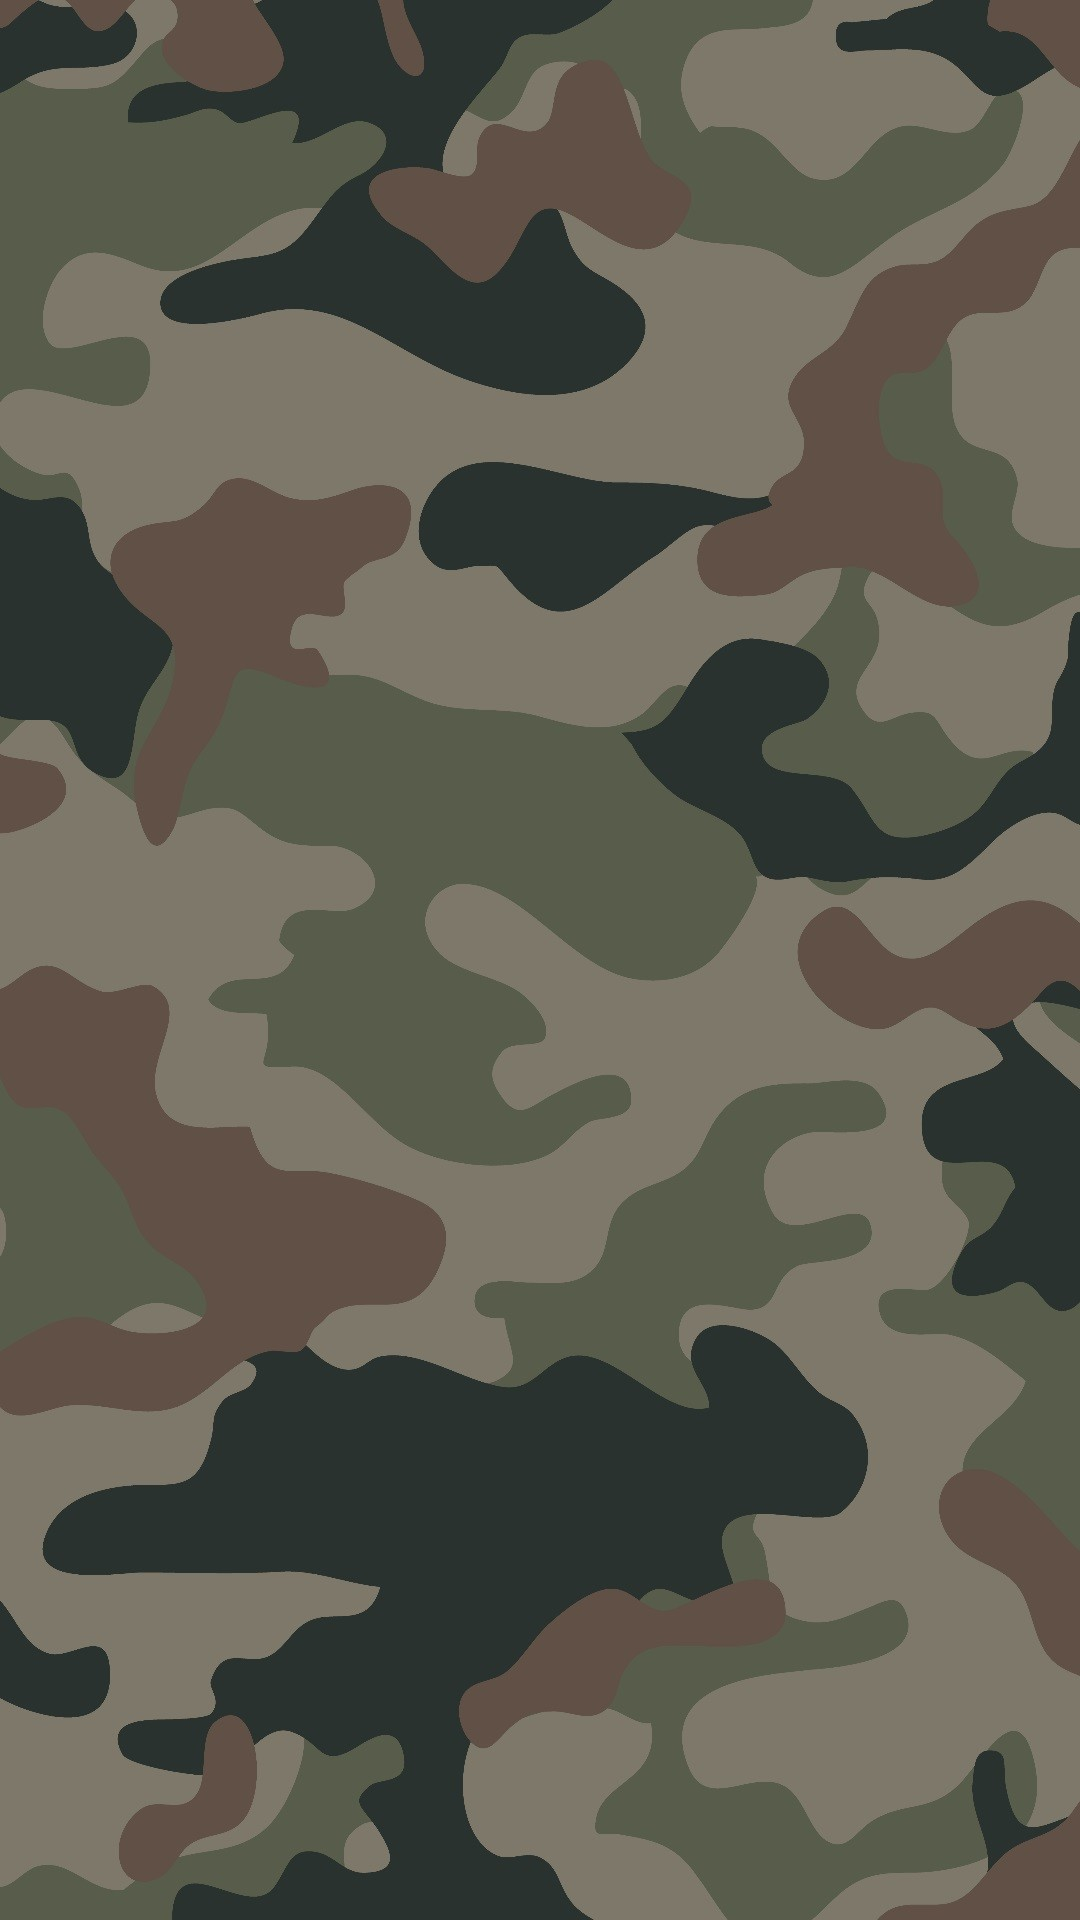 Camouflage Wallpaper For Iphone Or Android - Camouflage Wallpaper Iphone - HD Wallpaper